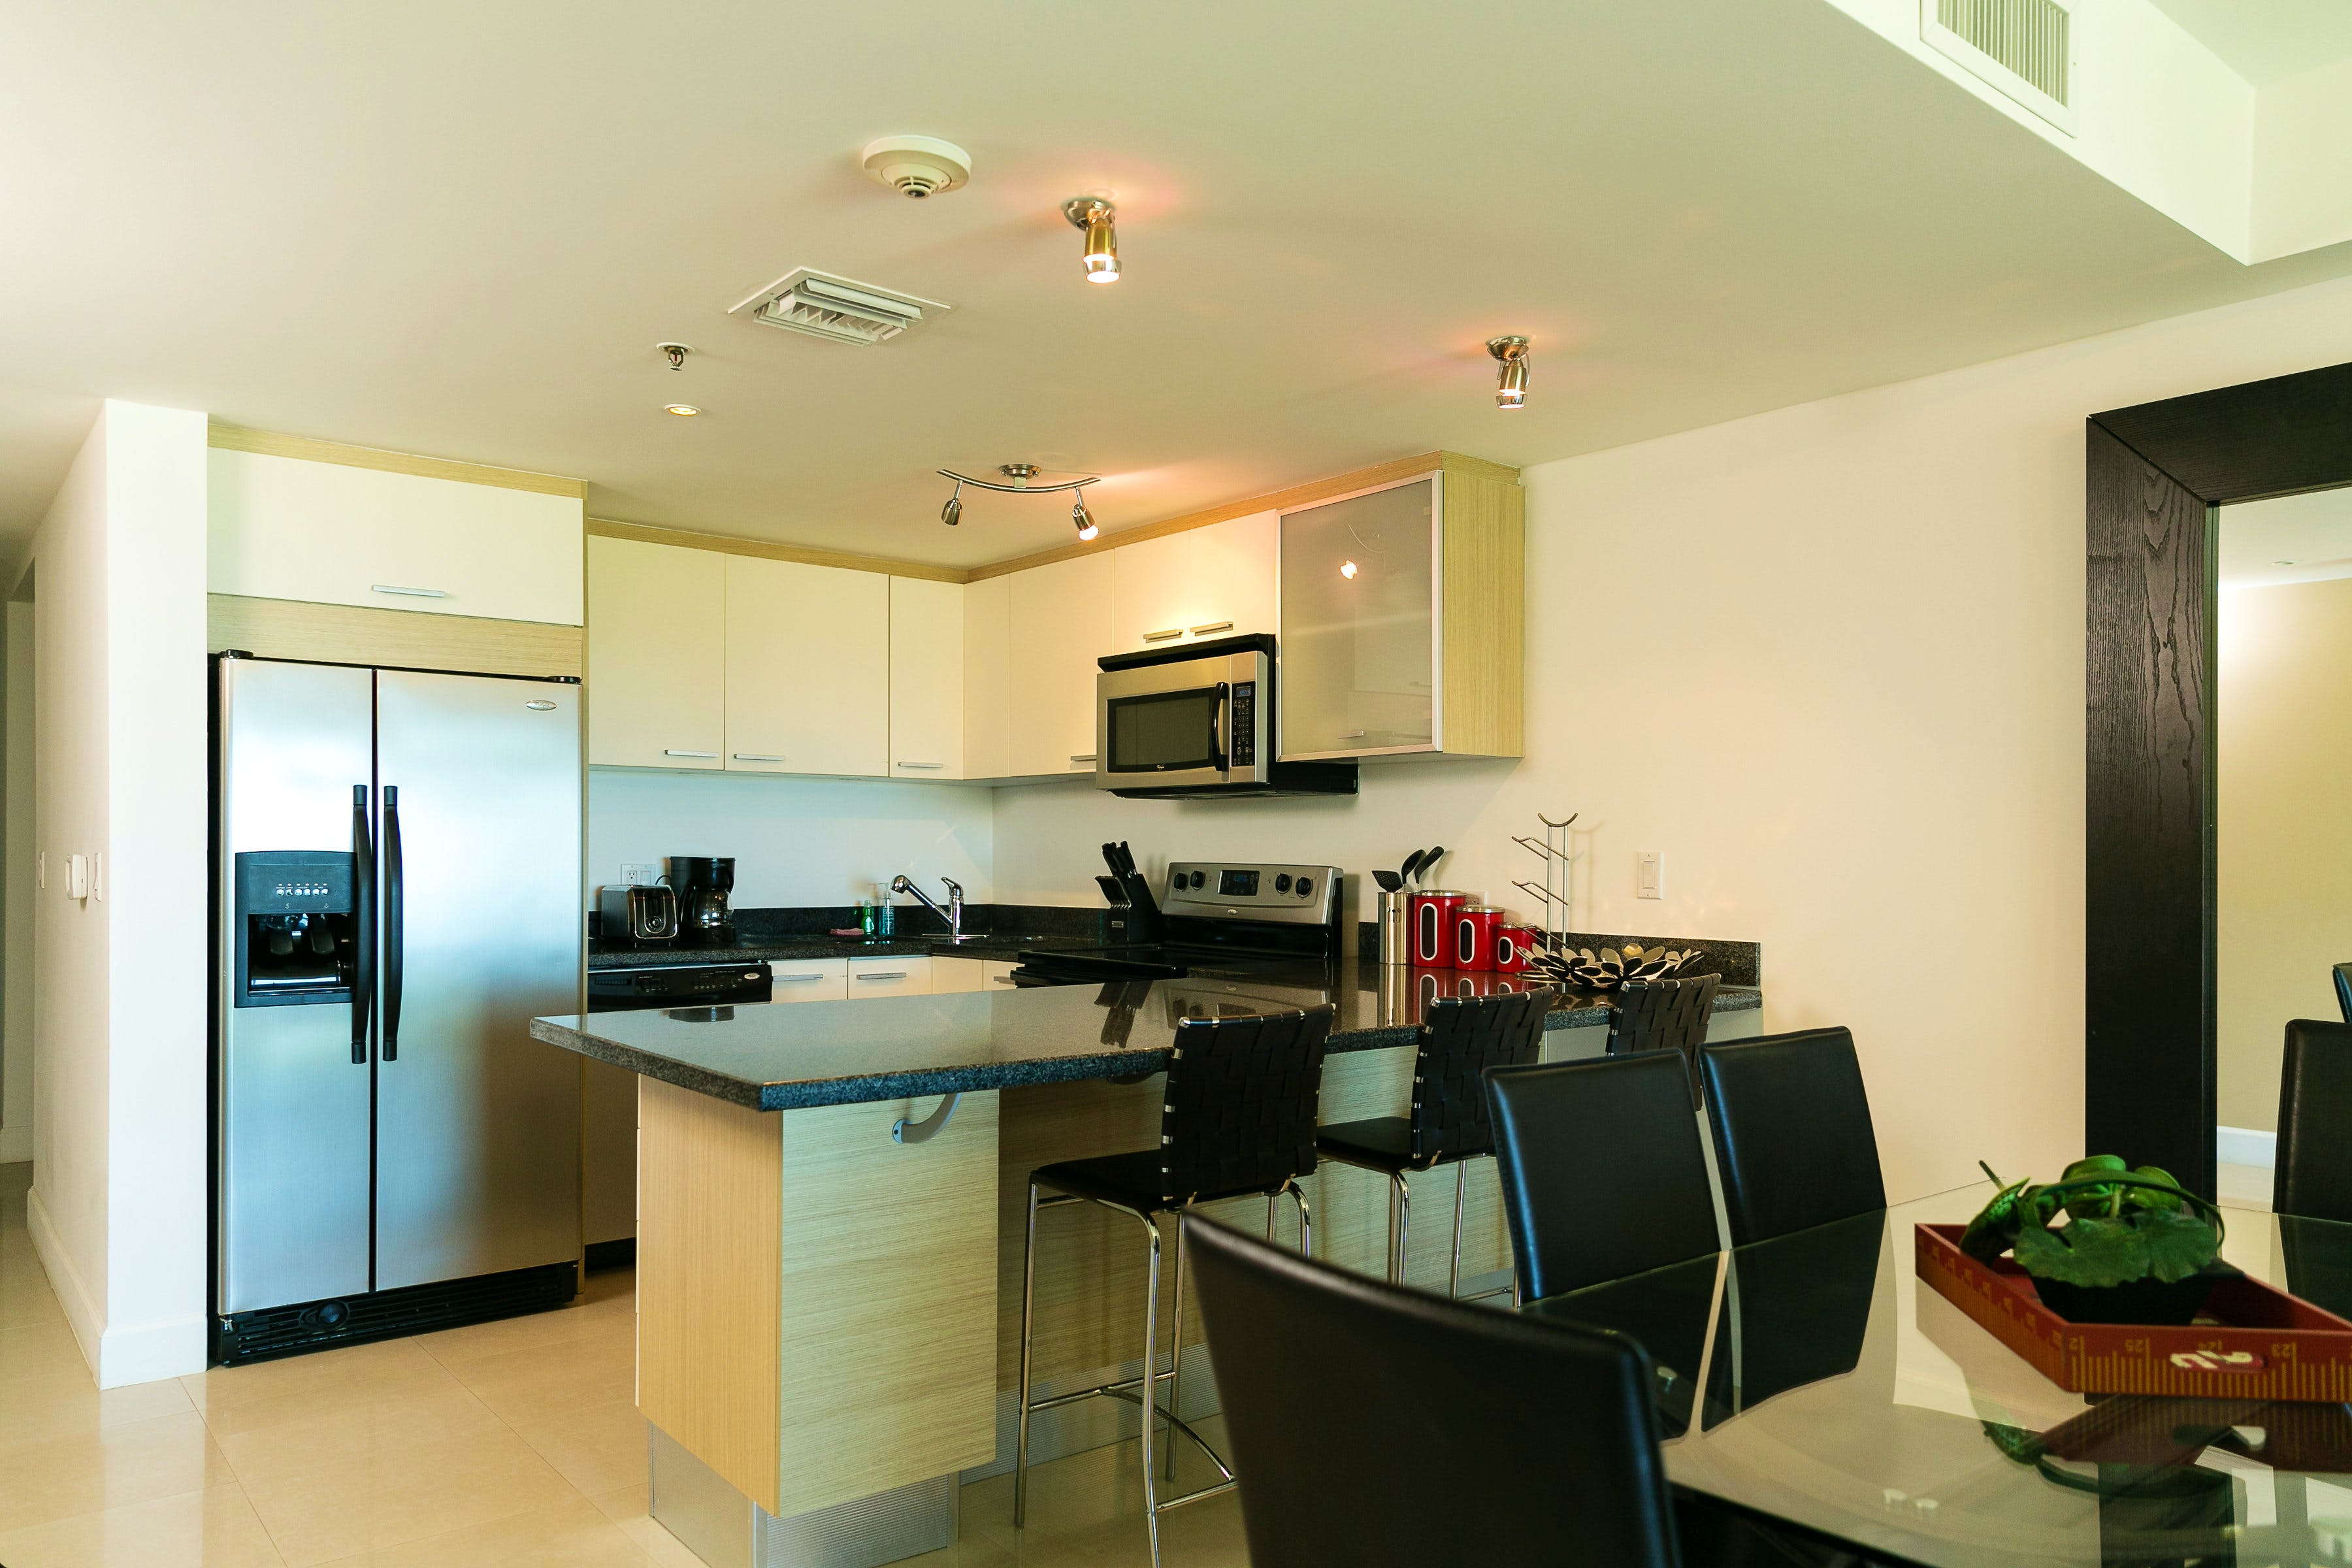 Apartment 346, Kitchen + Dining